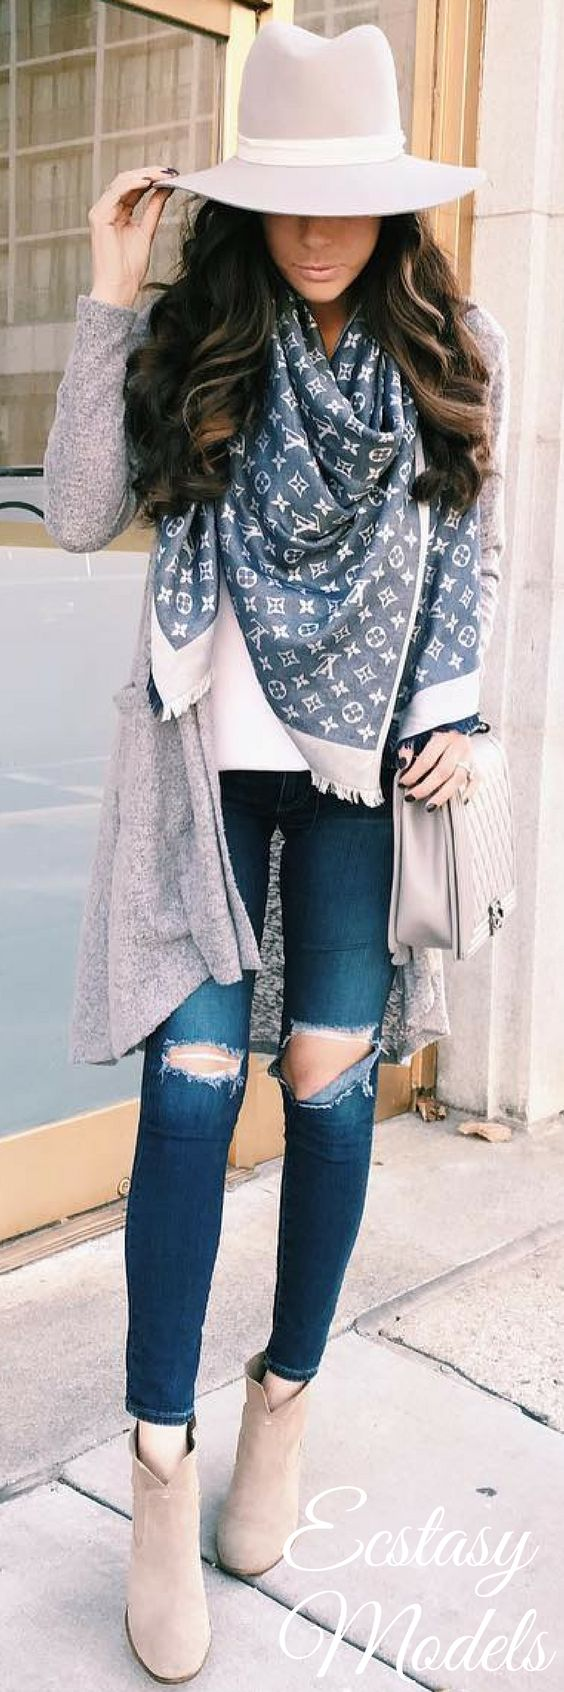 Fall Cardigan // Fashion Look by Emily Ann Gemma